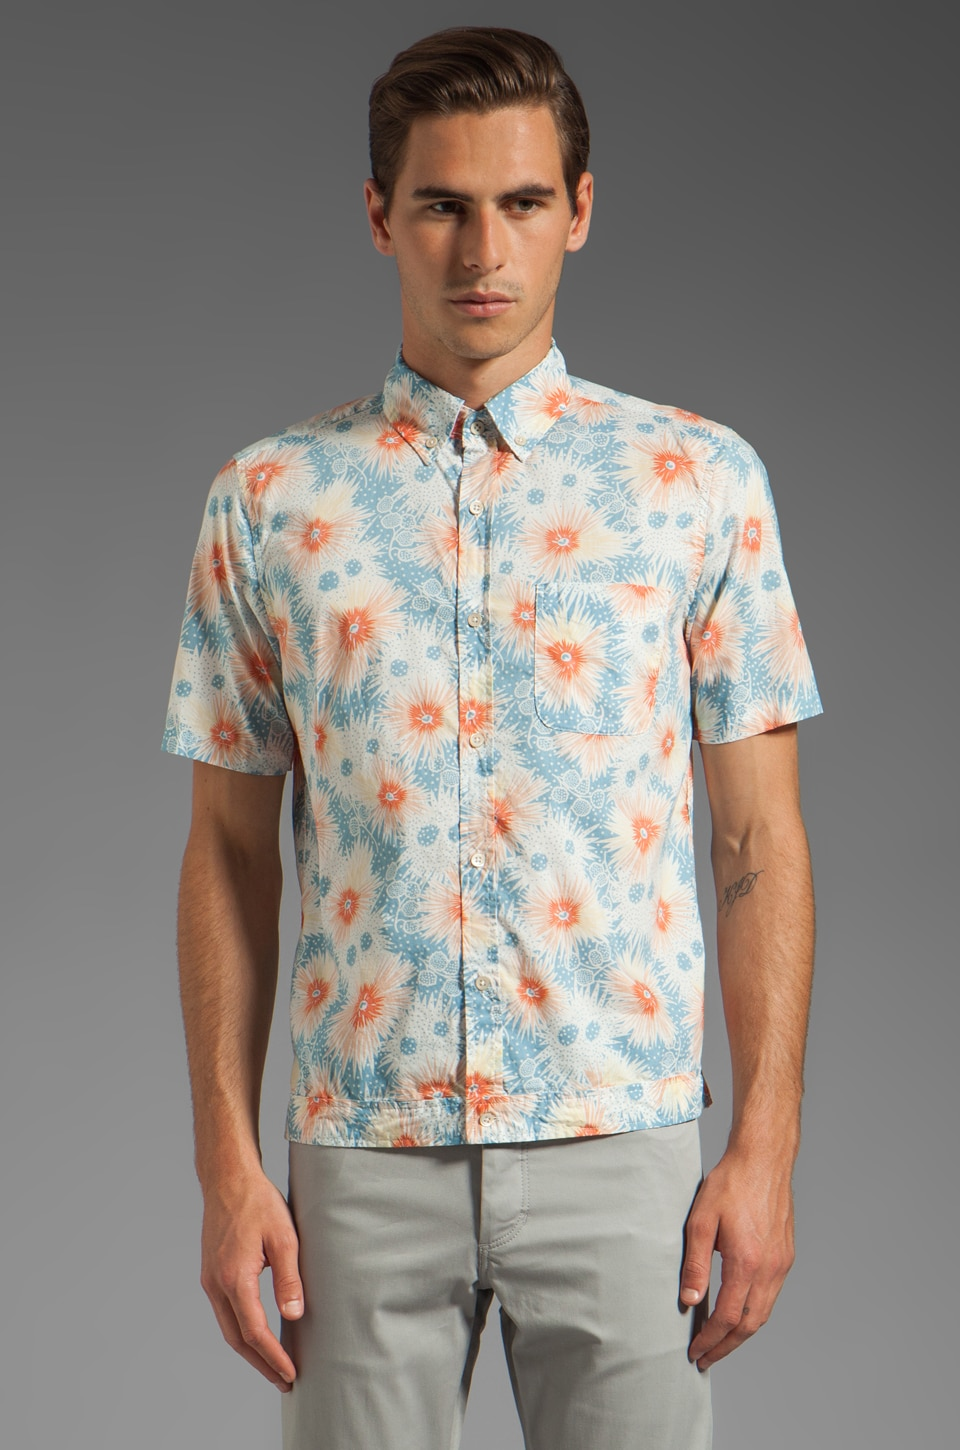 Steven Alan Cooper Shirt in Starburst